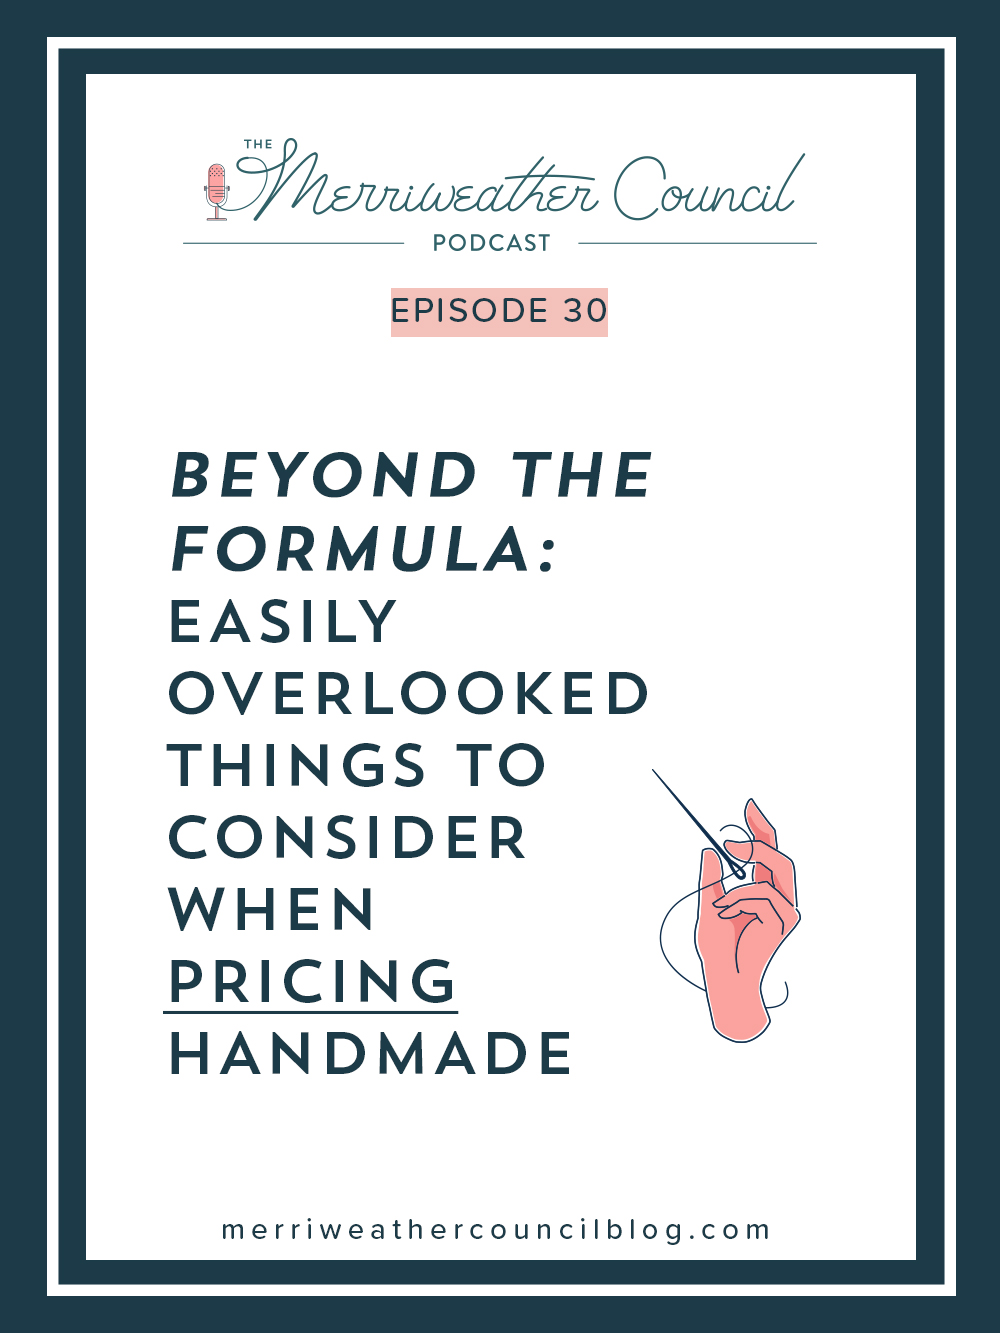 Episode 30: Beyond the Formula, Easily Overlooked Things to Consider When Pricing Handmade | The Merriweather Council Podcast